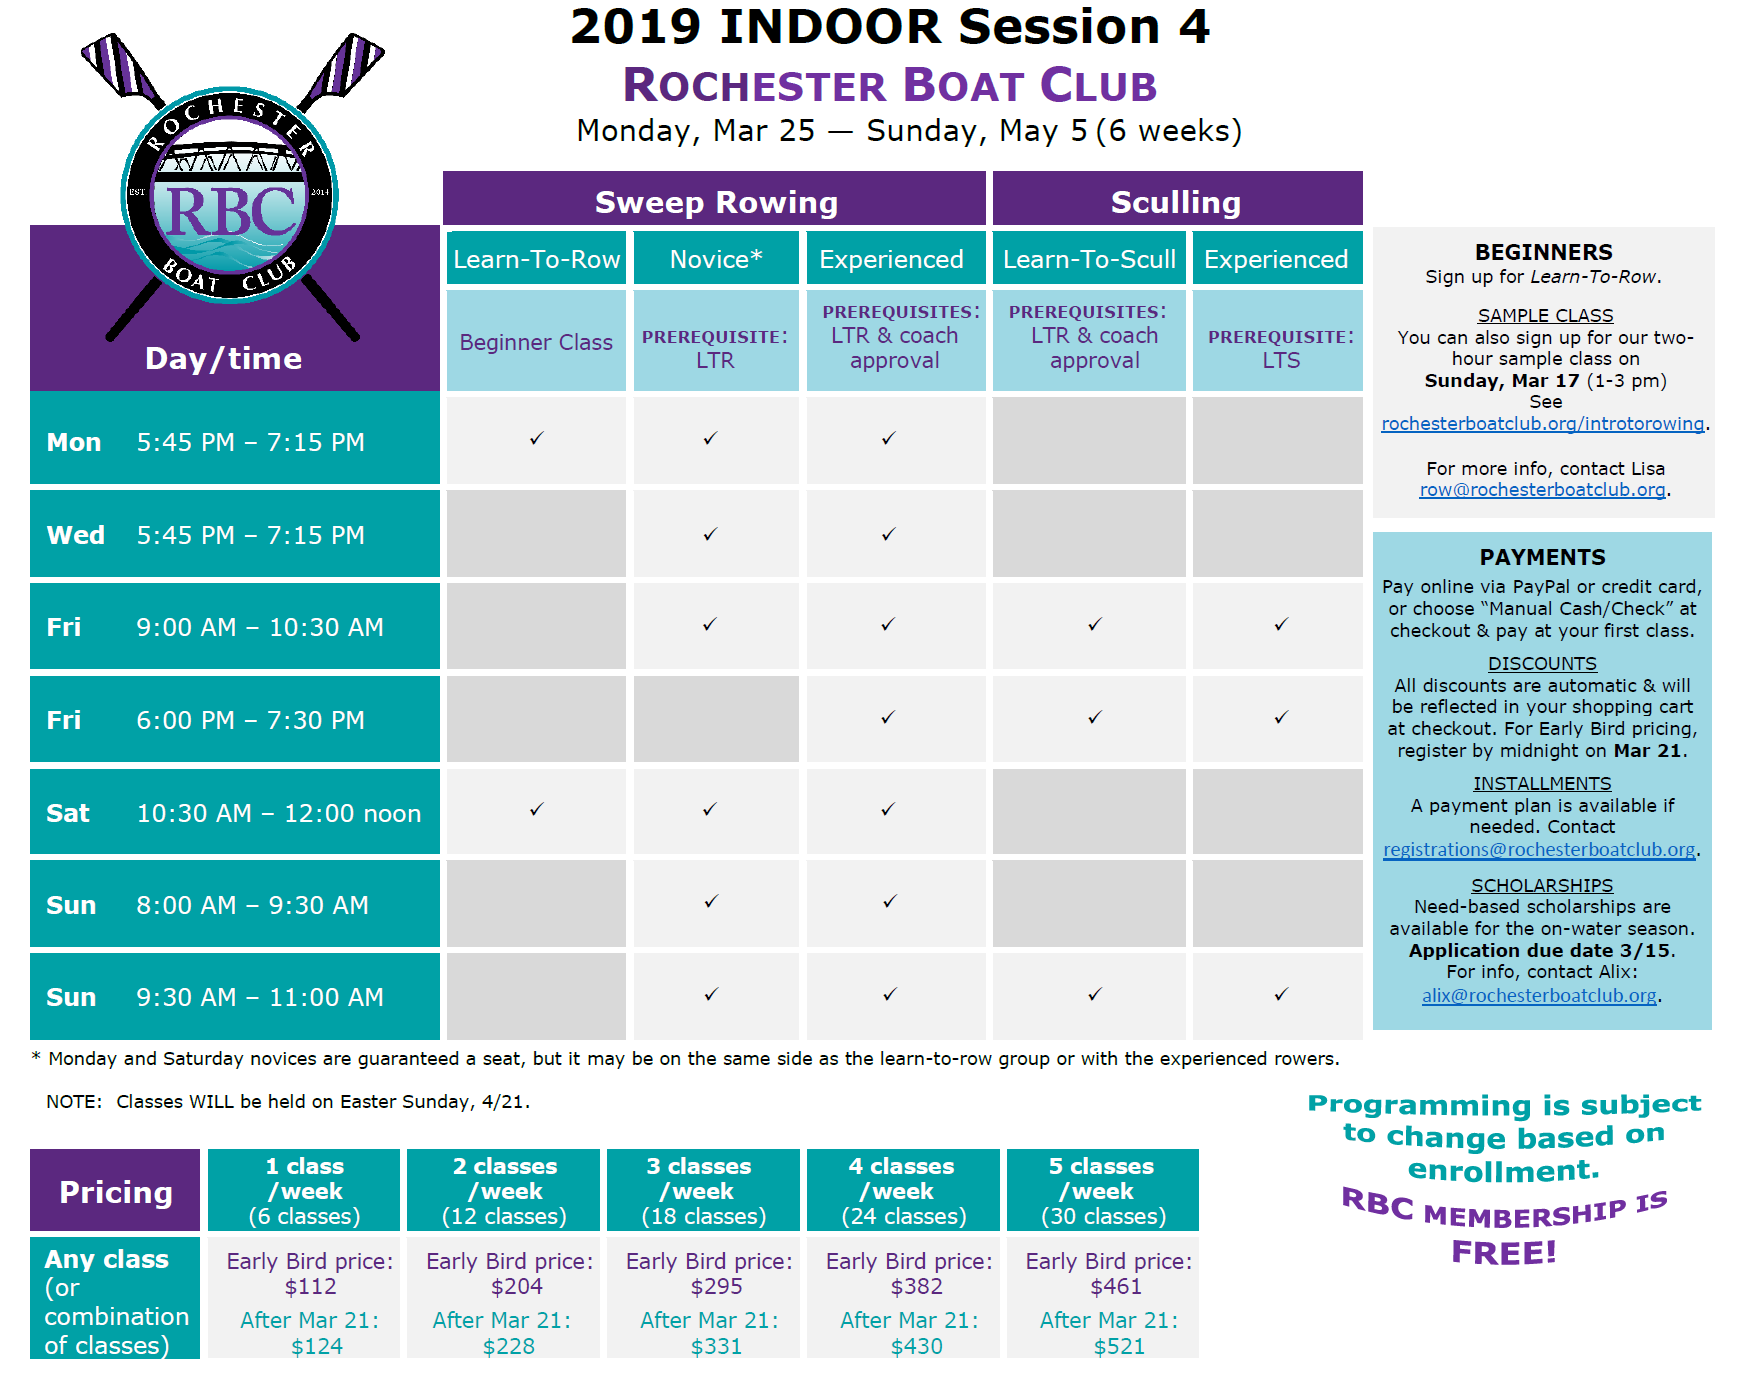 Indoor Session 4 Classes/Programming